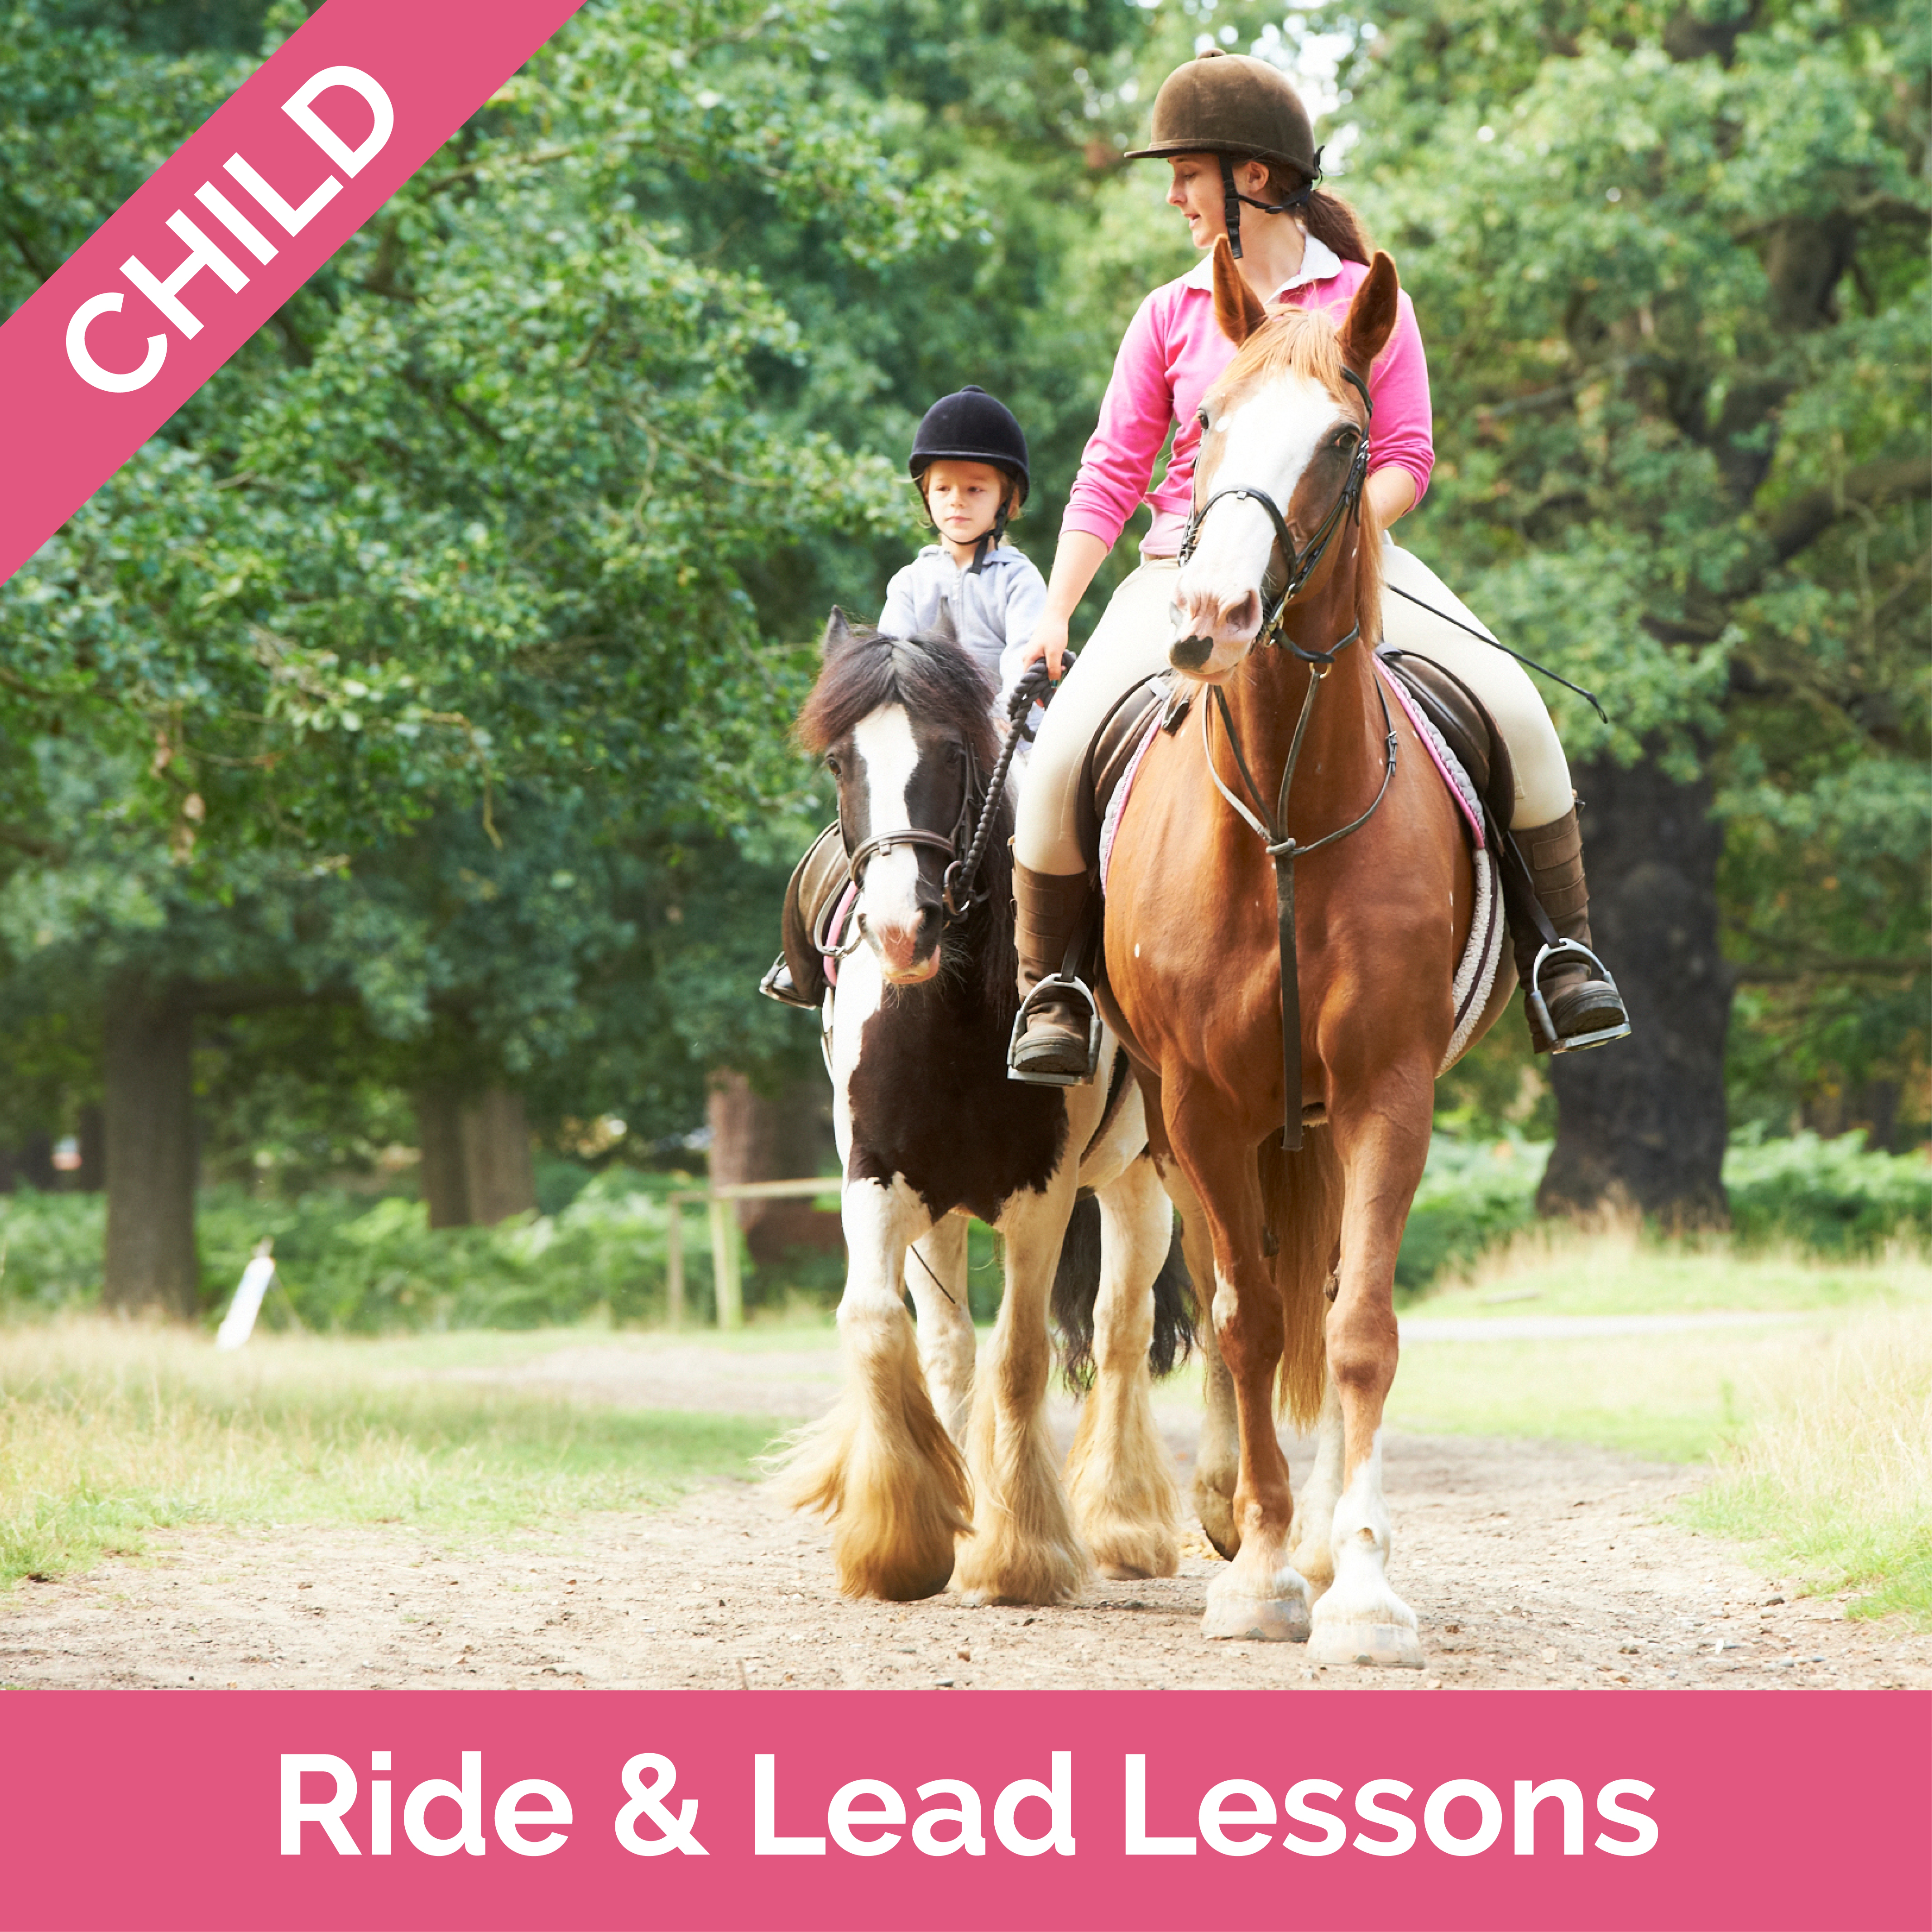 Stag-Lodge-Website-Buy-Pics-Child-Ride-&-Lead